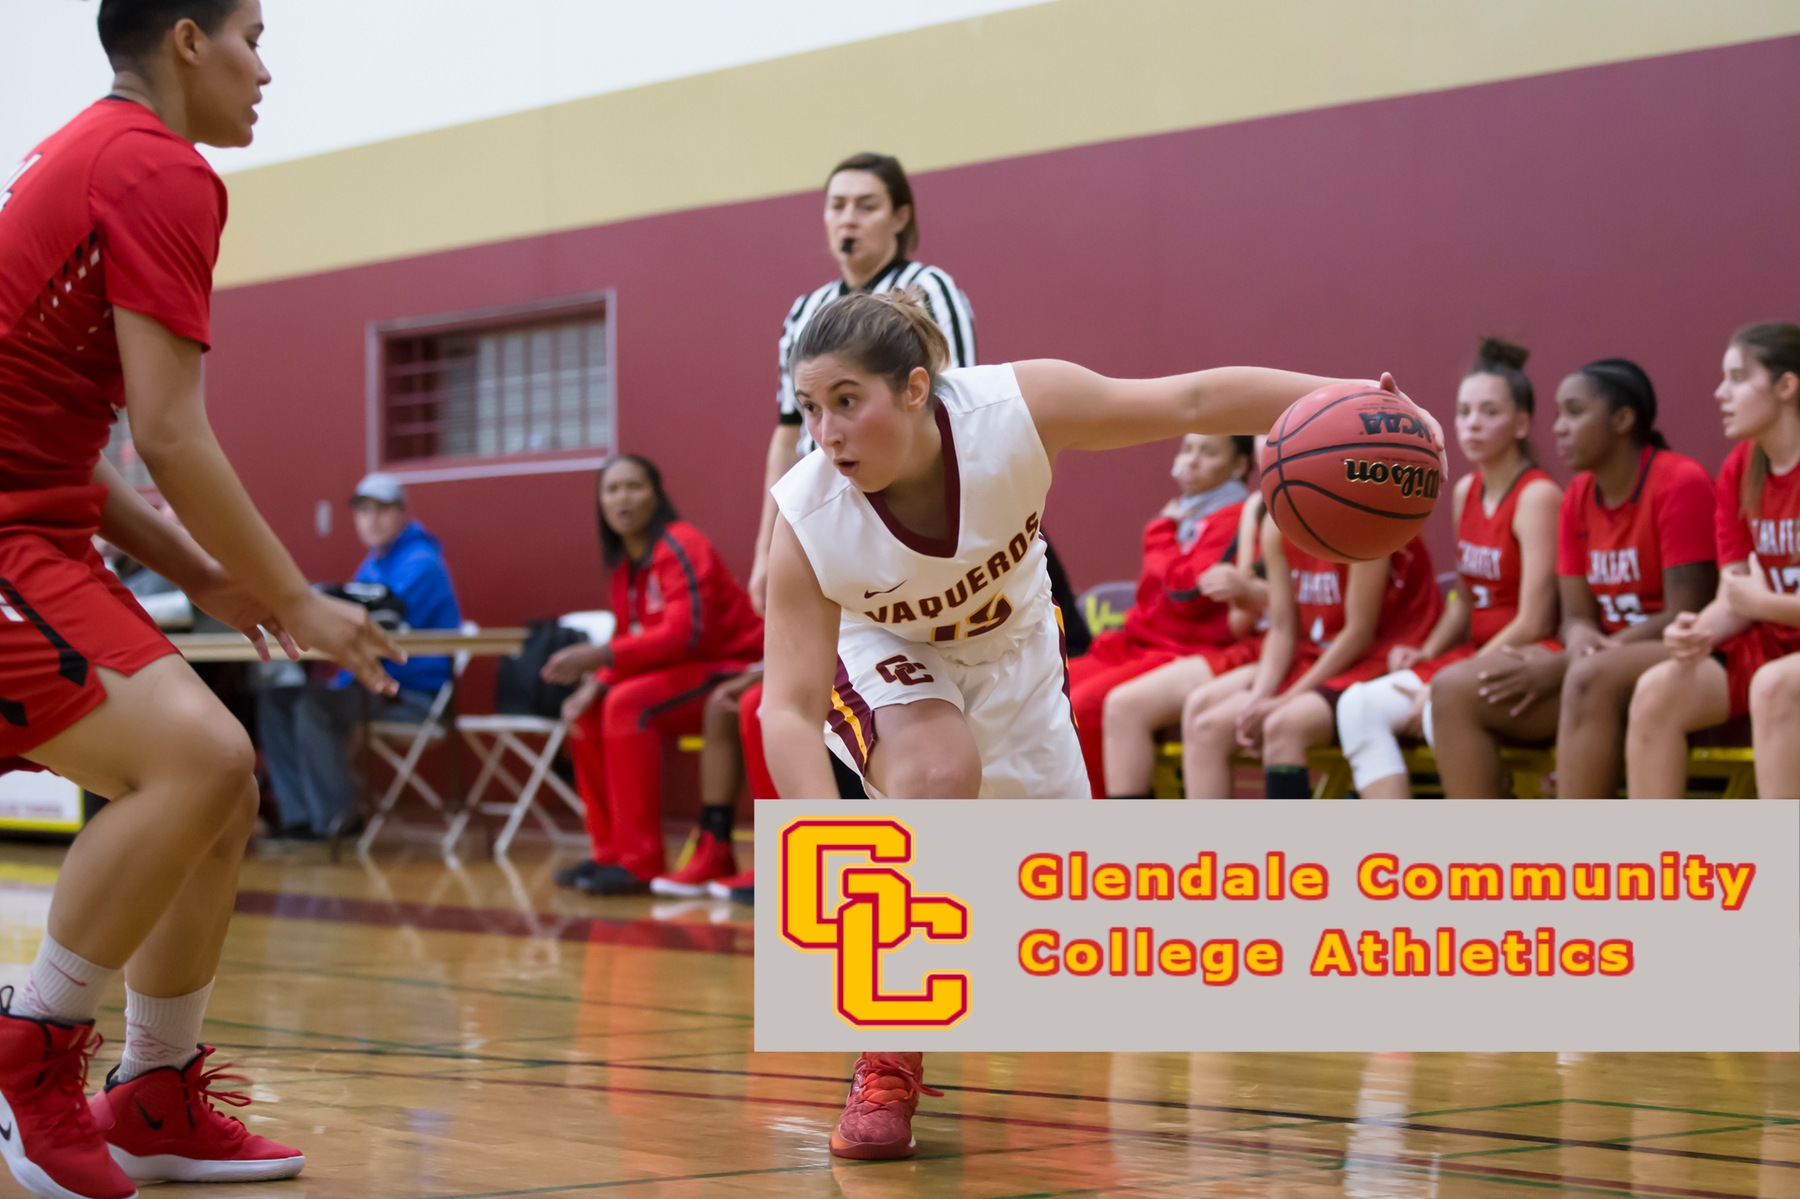 GCC Women's Basketball improves to 4-1 with a pair of wins